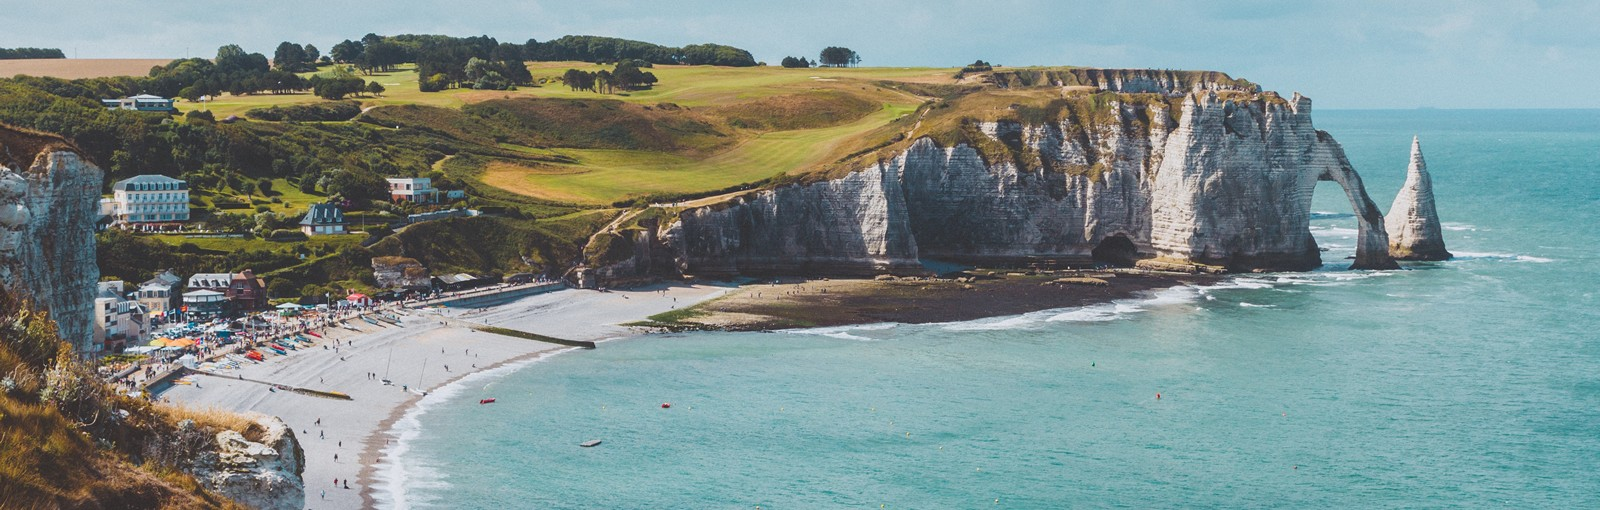 Tours Normandy differently - Normandy - Multiday tours from Paris